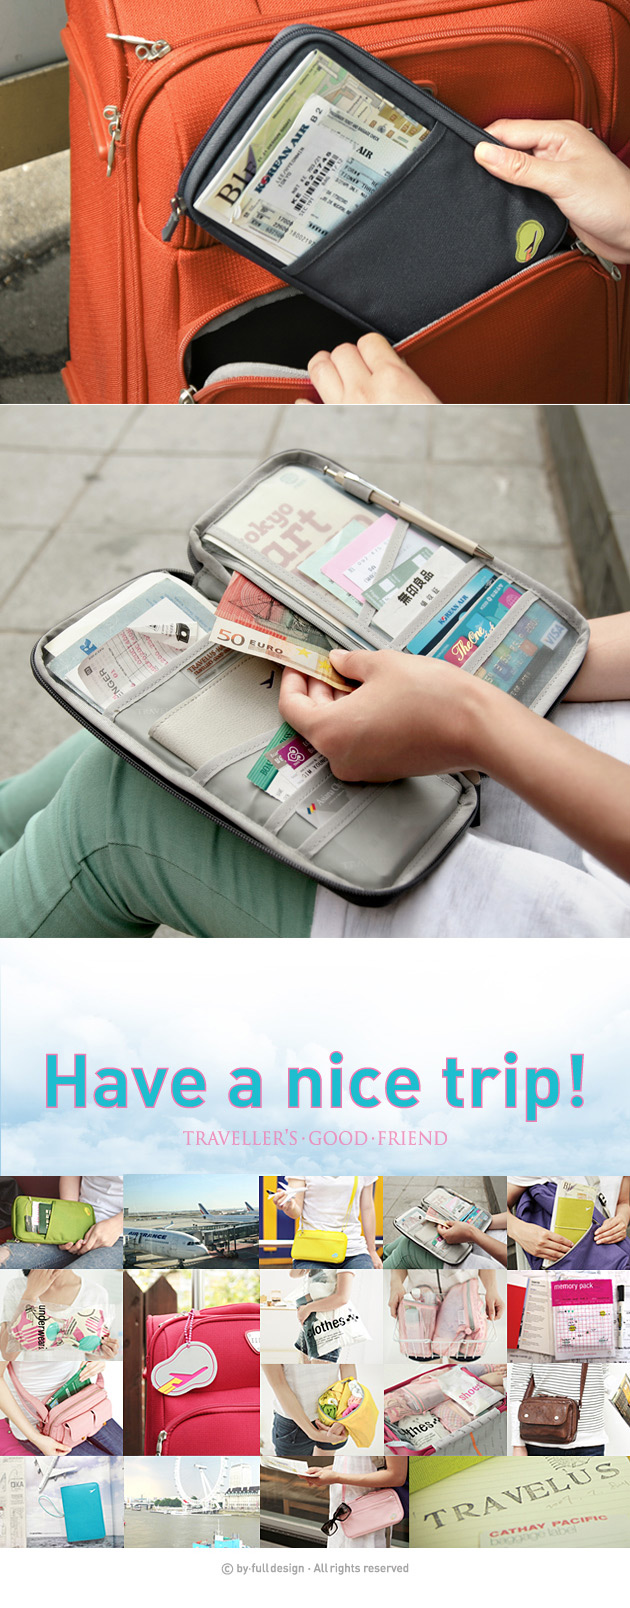 multifunctional-pocket-for-passport-air-ticket-holder-07